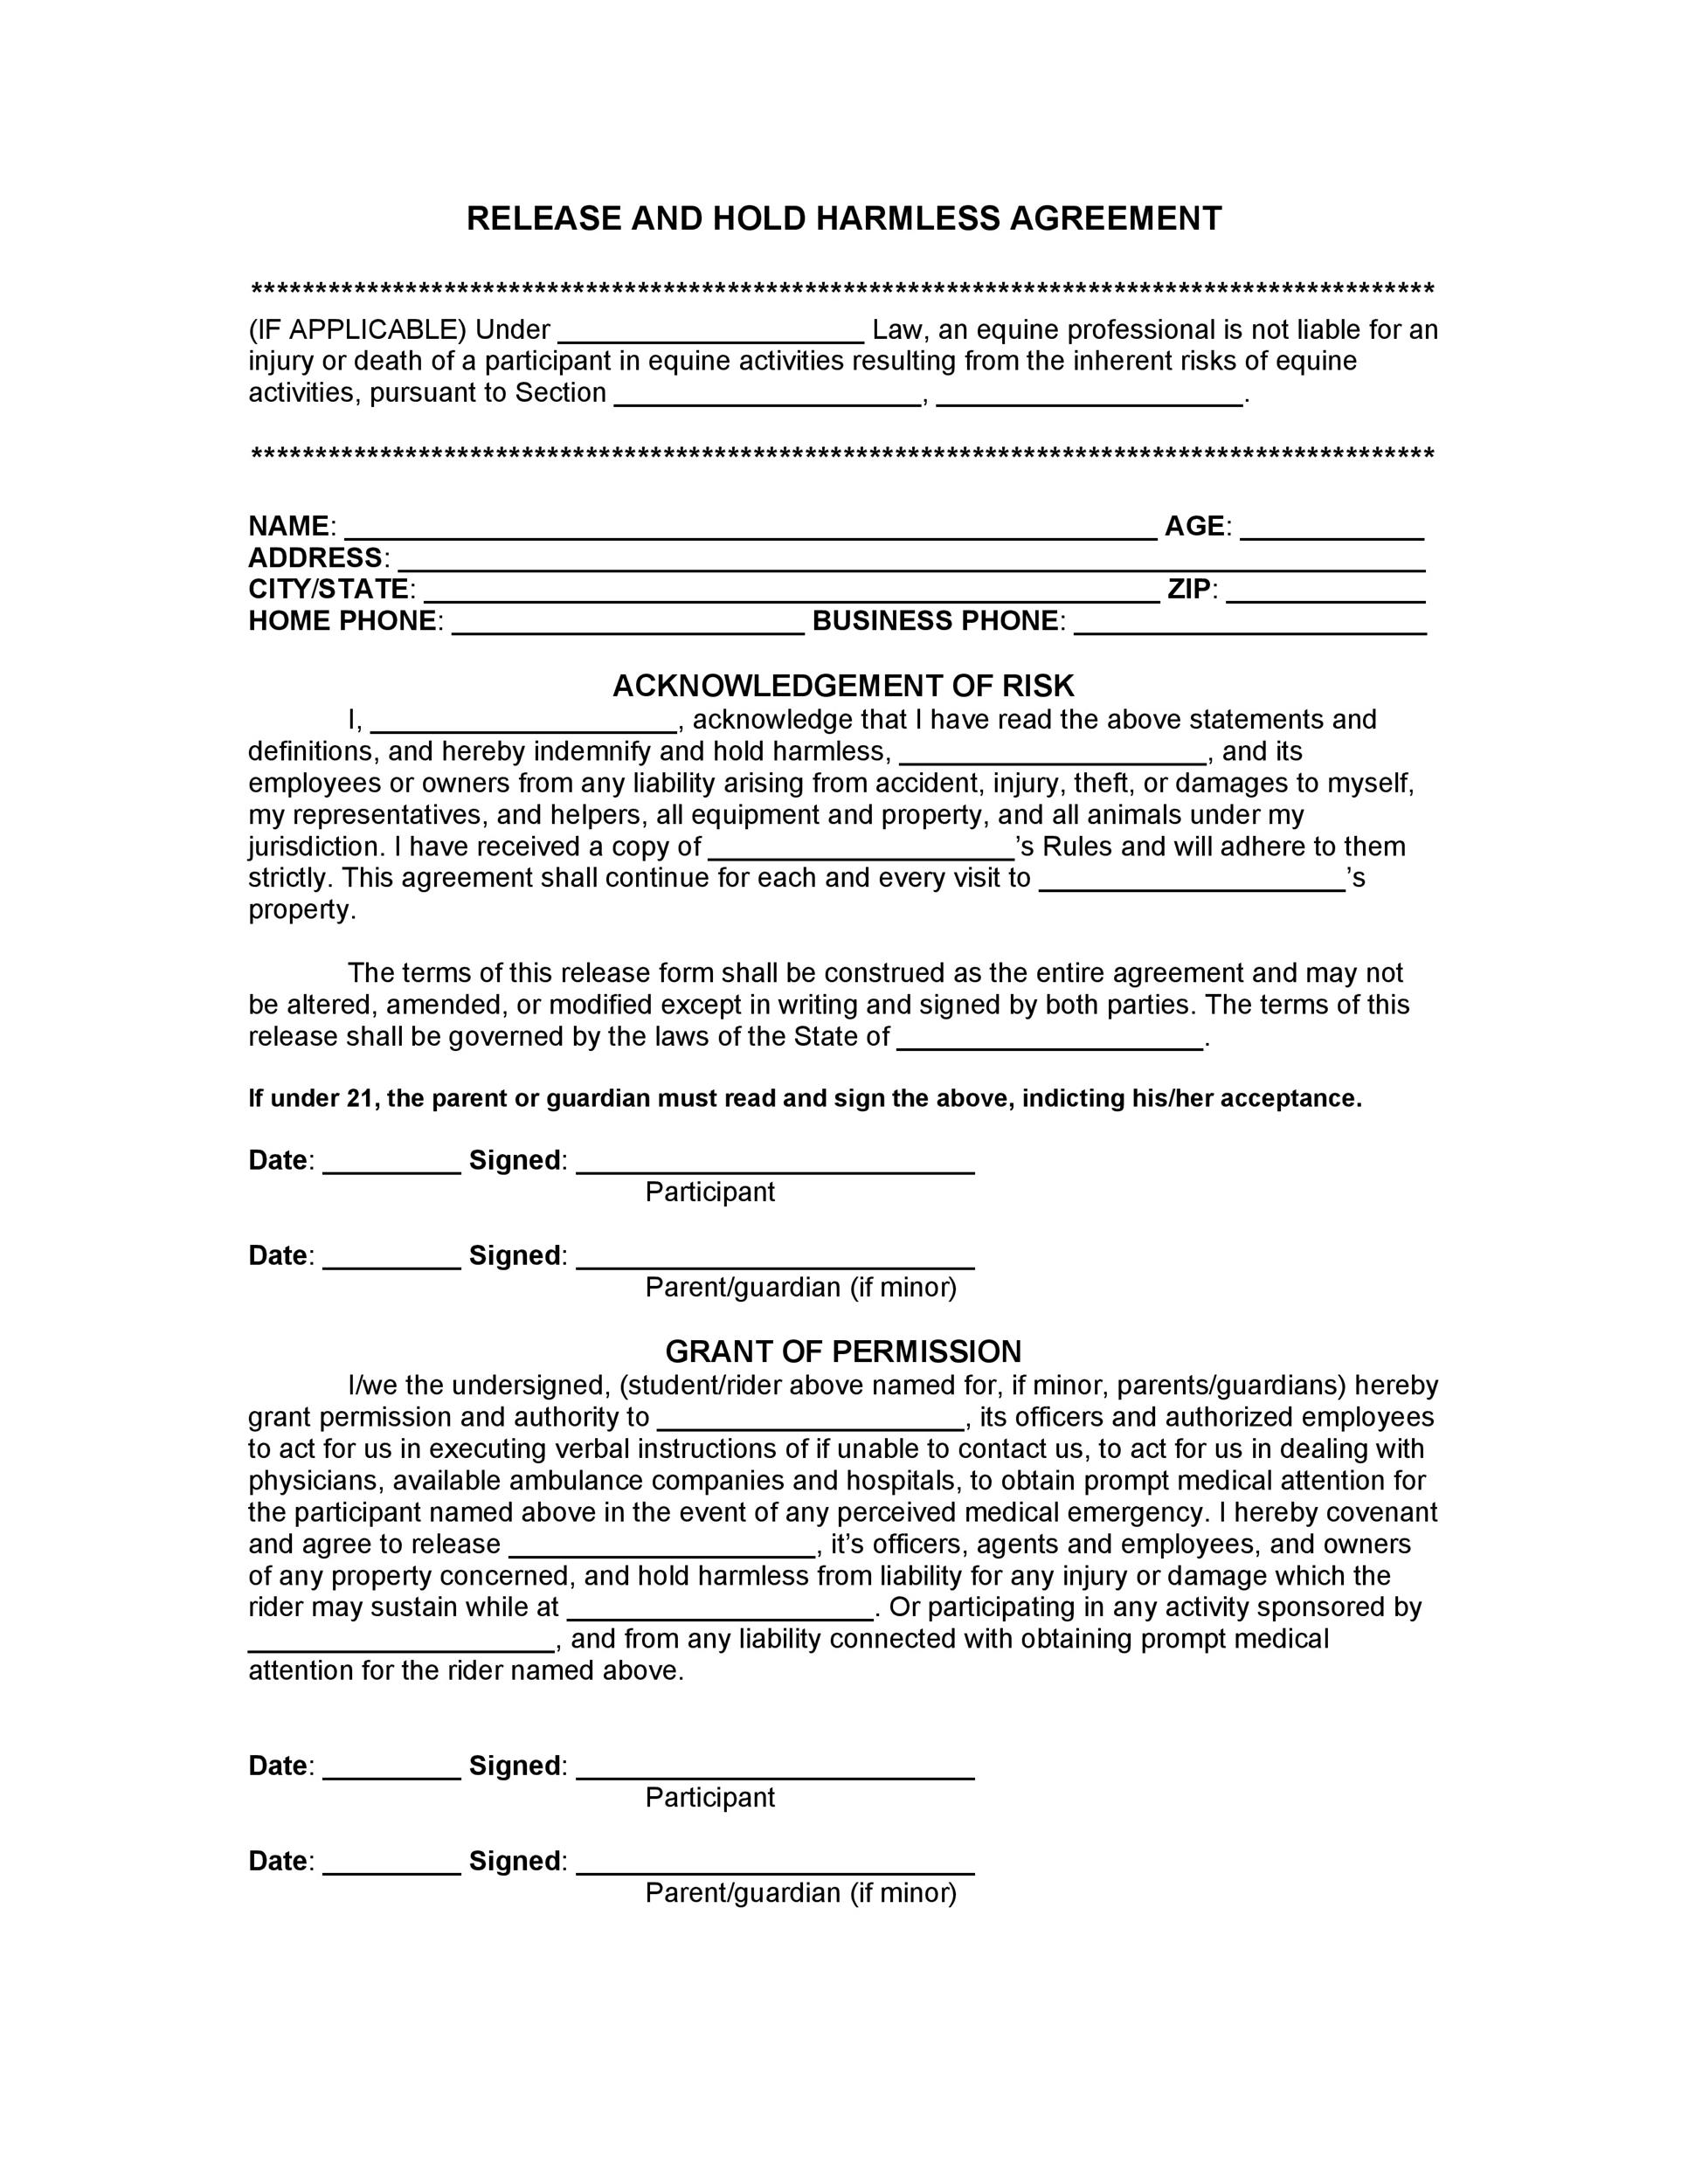 employee vehicle use agreement template - 40 hold harmless agreement templates free template lab